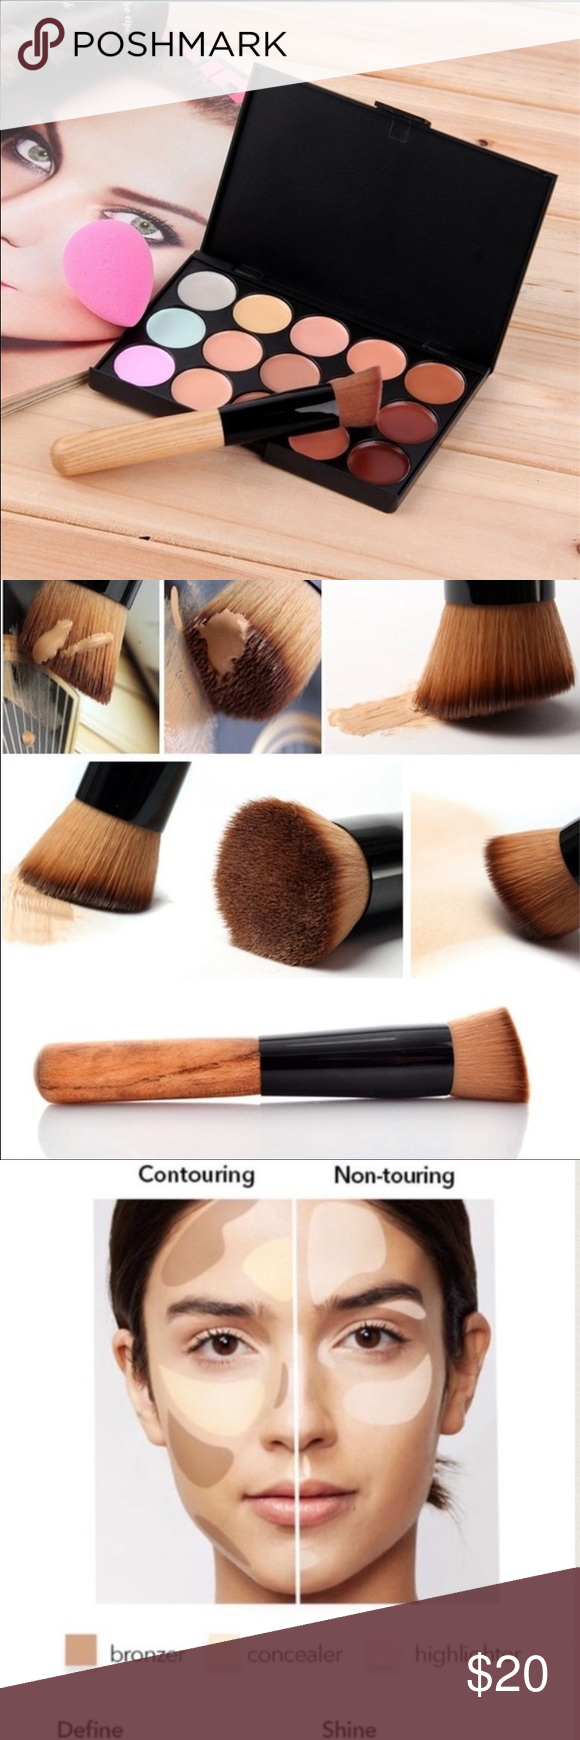 CONCEALER/CONTOURING 15 colors + Brush + Sponge Ocular